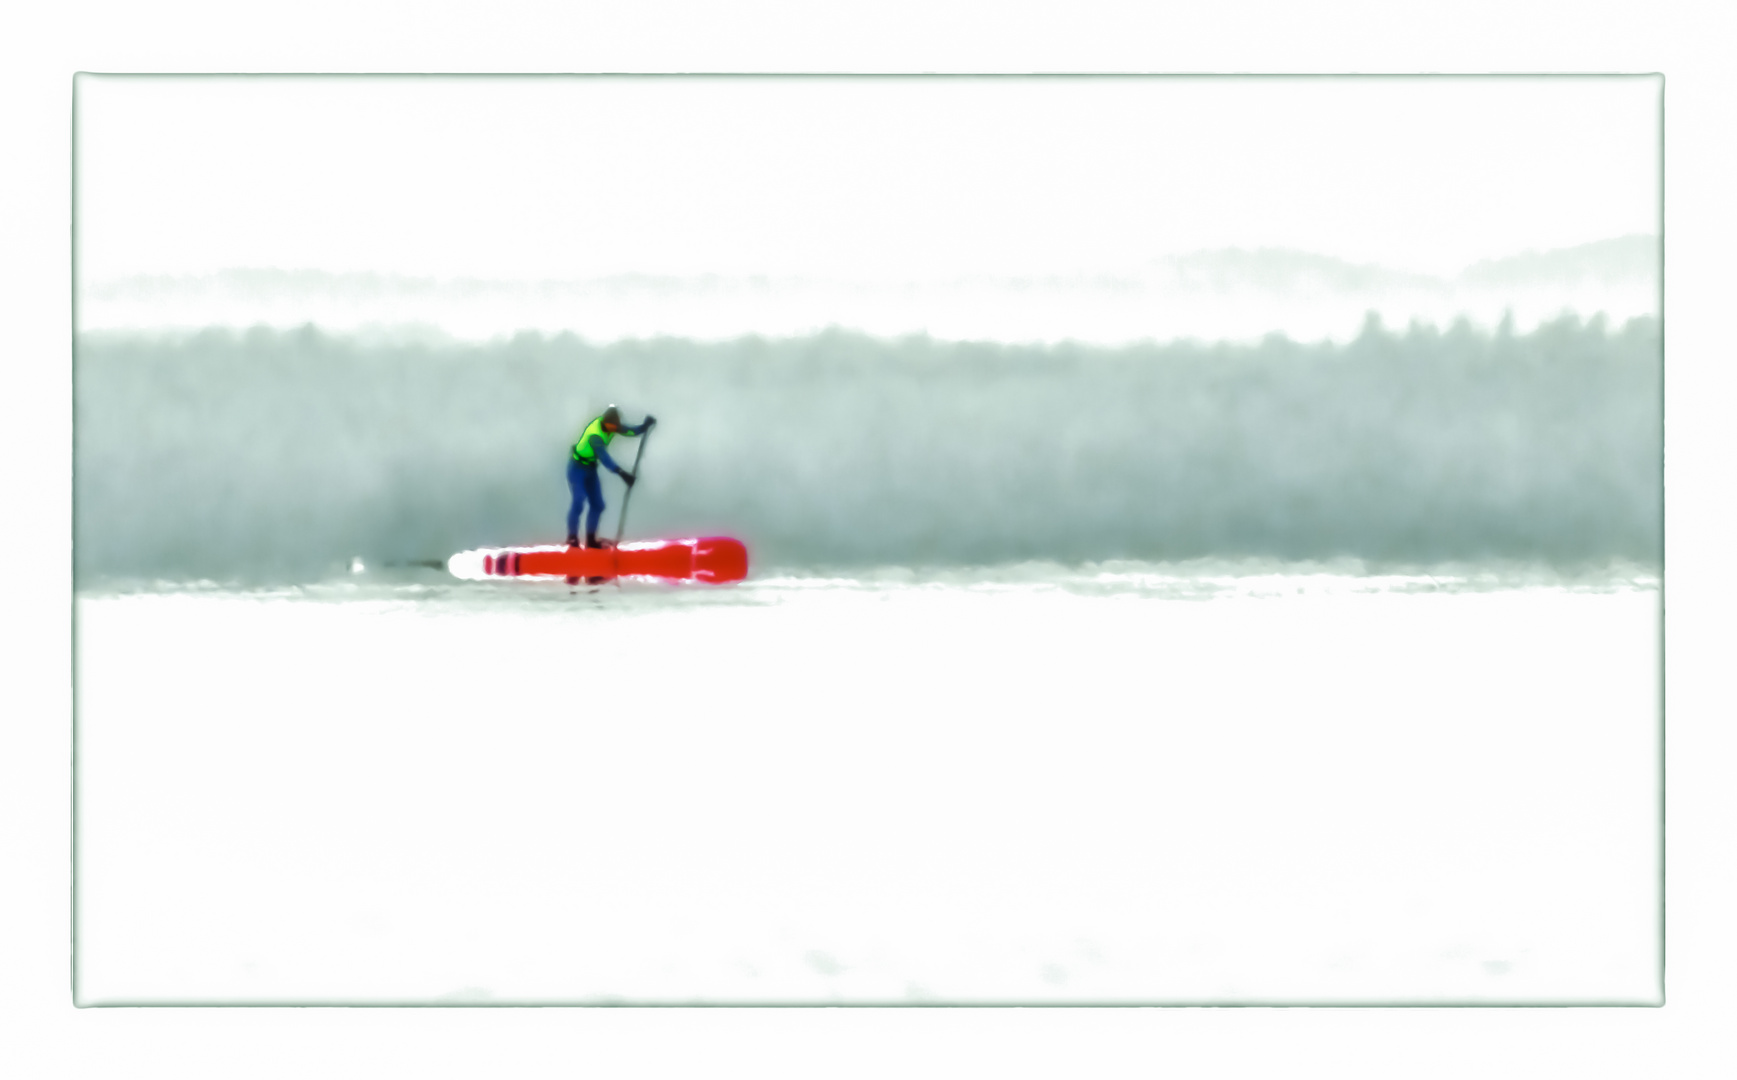 Stand up! Paddling to 2021